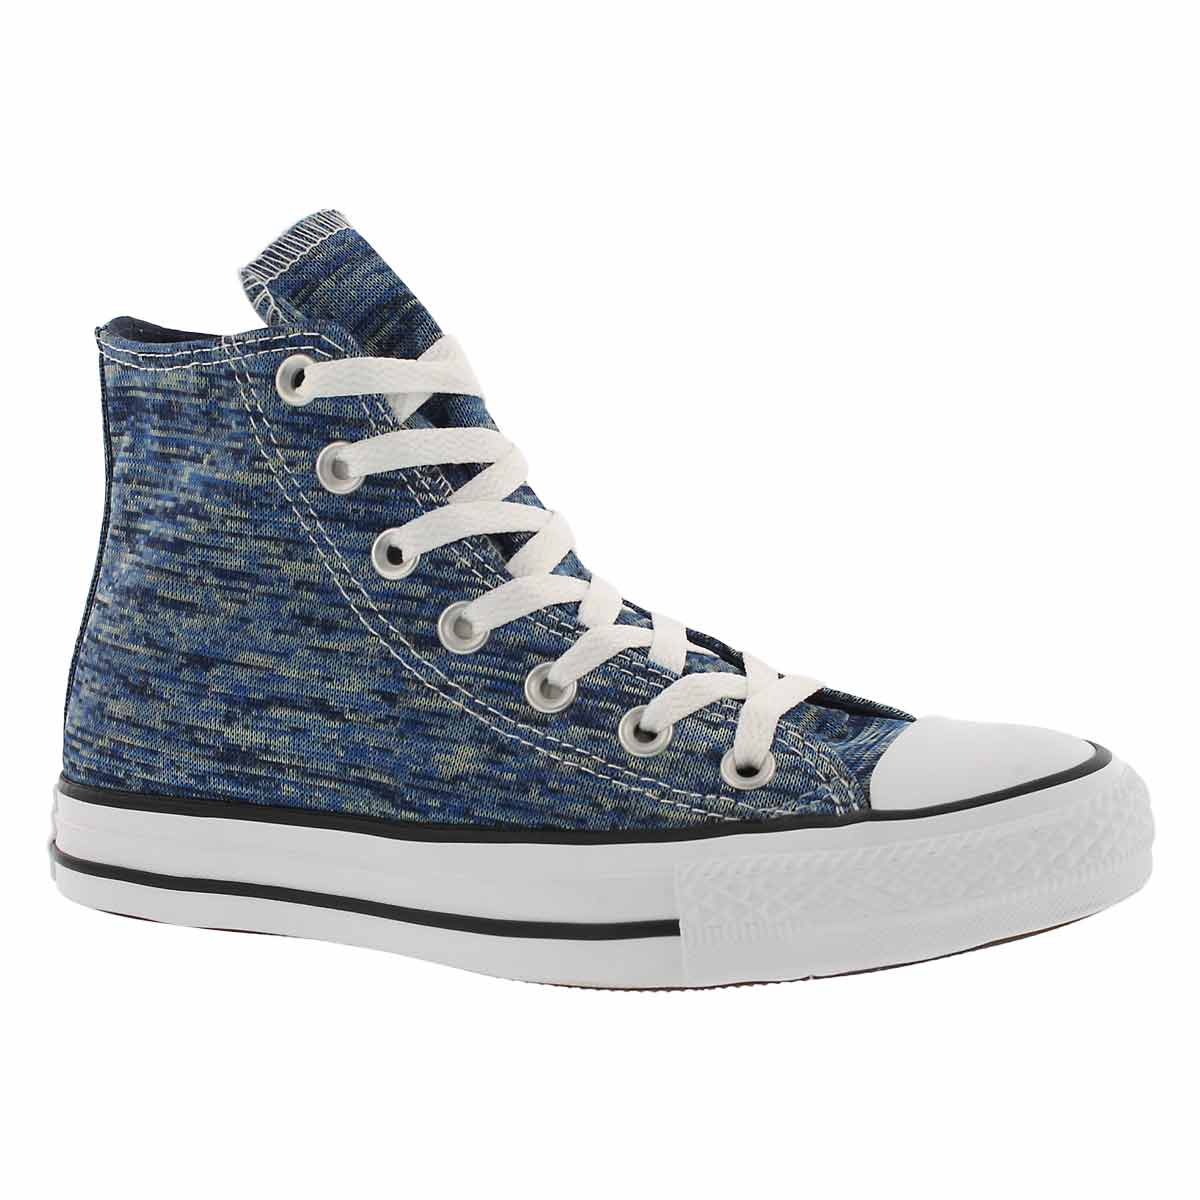 Women's CT ALL STAR CLASSIC JERSEY navy high tops